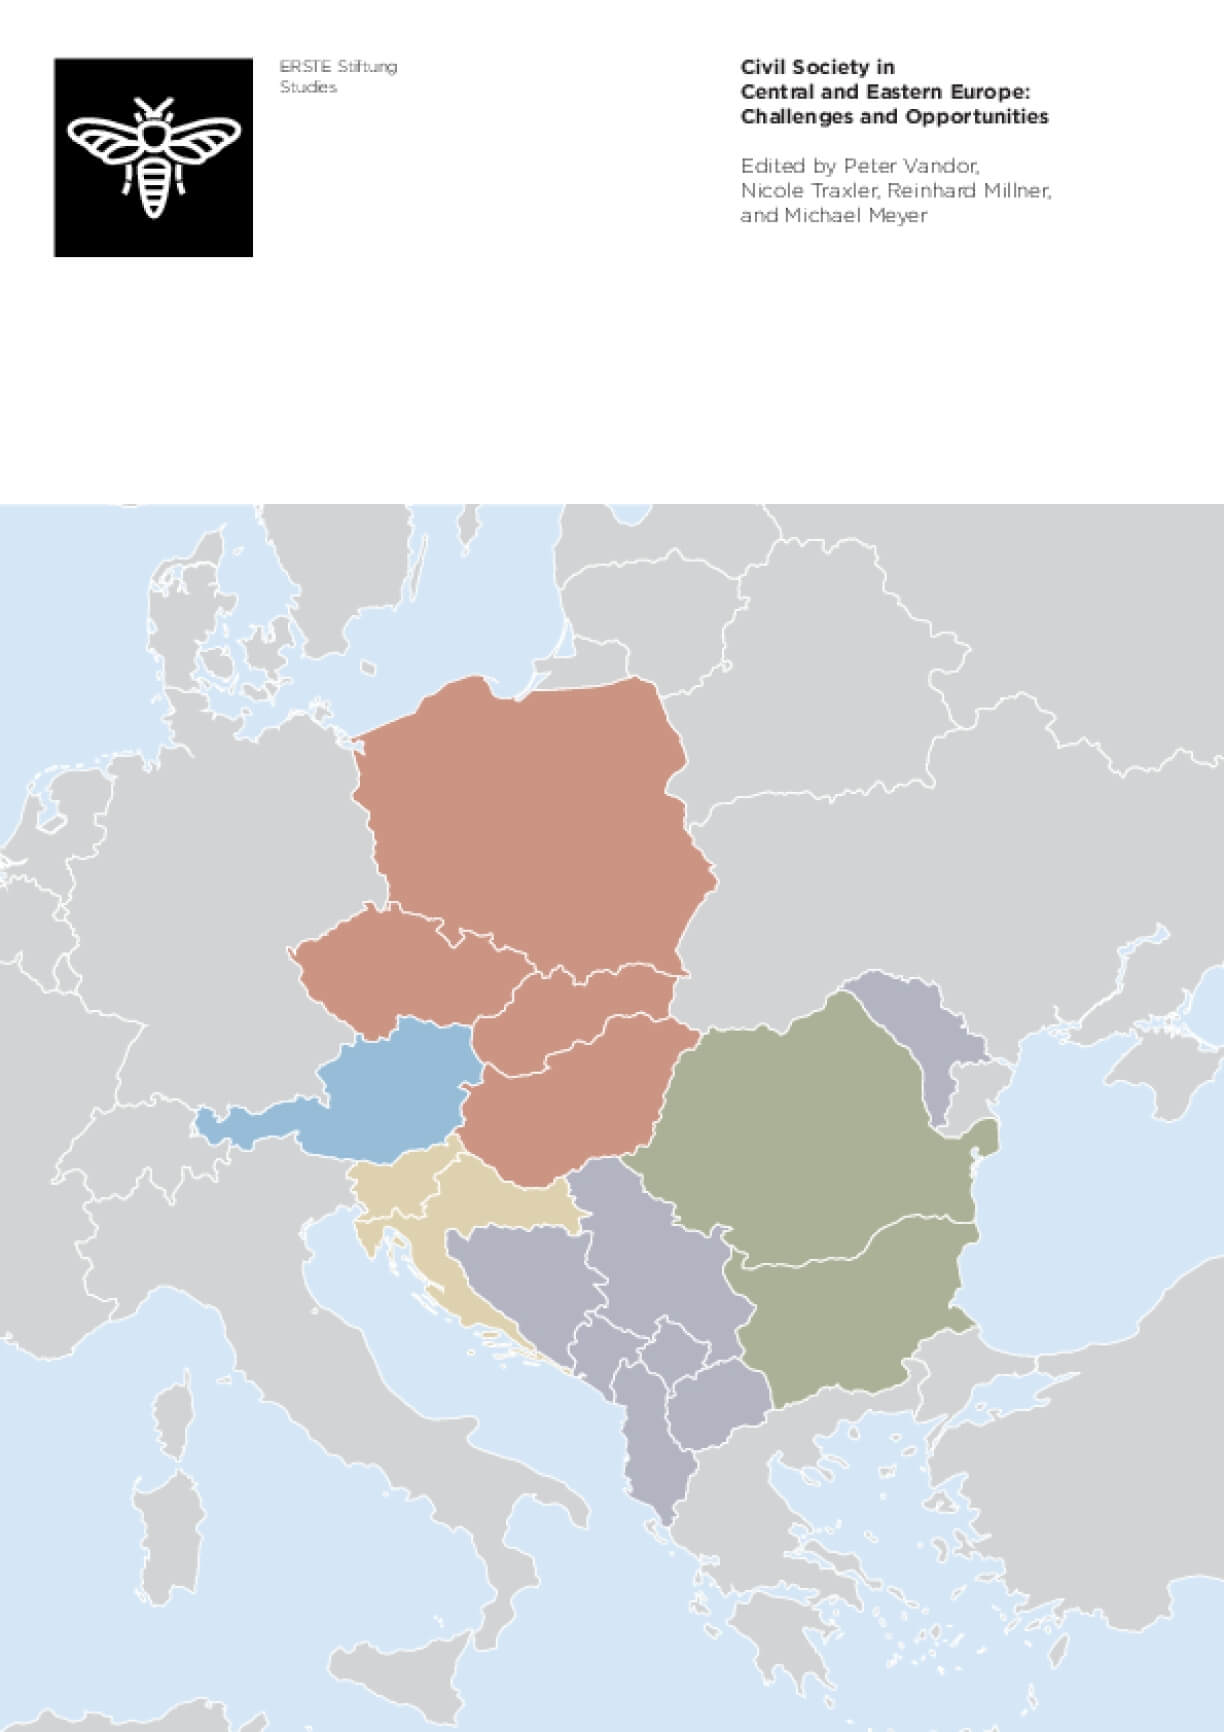 Civil Society in Central and Eastern Europe: Challenges and Opportunities